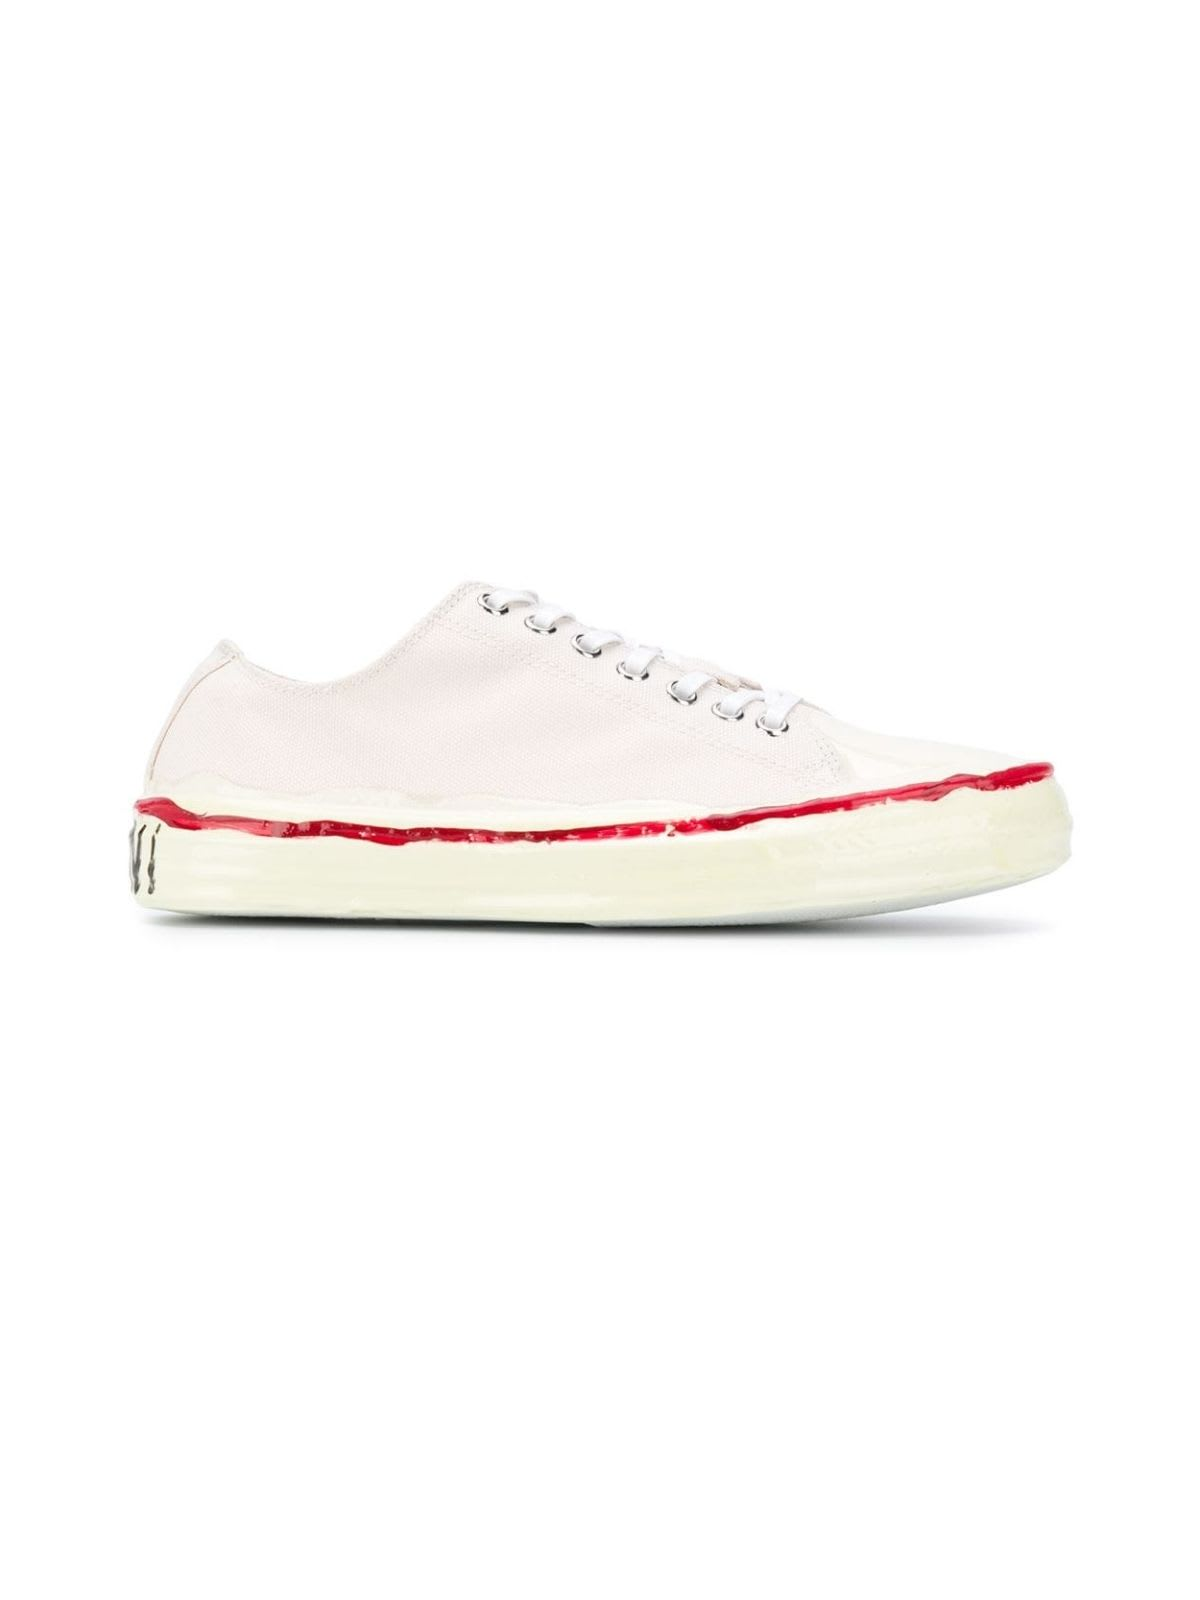 Buy Marni Low Sneakers online, shop Marni shoes with free shipping